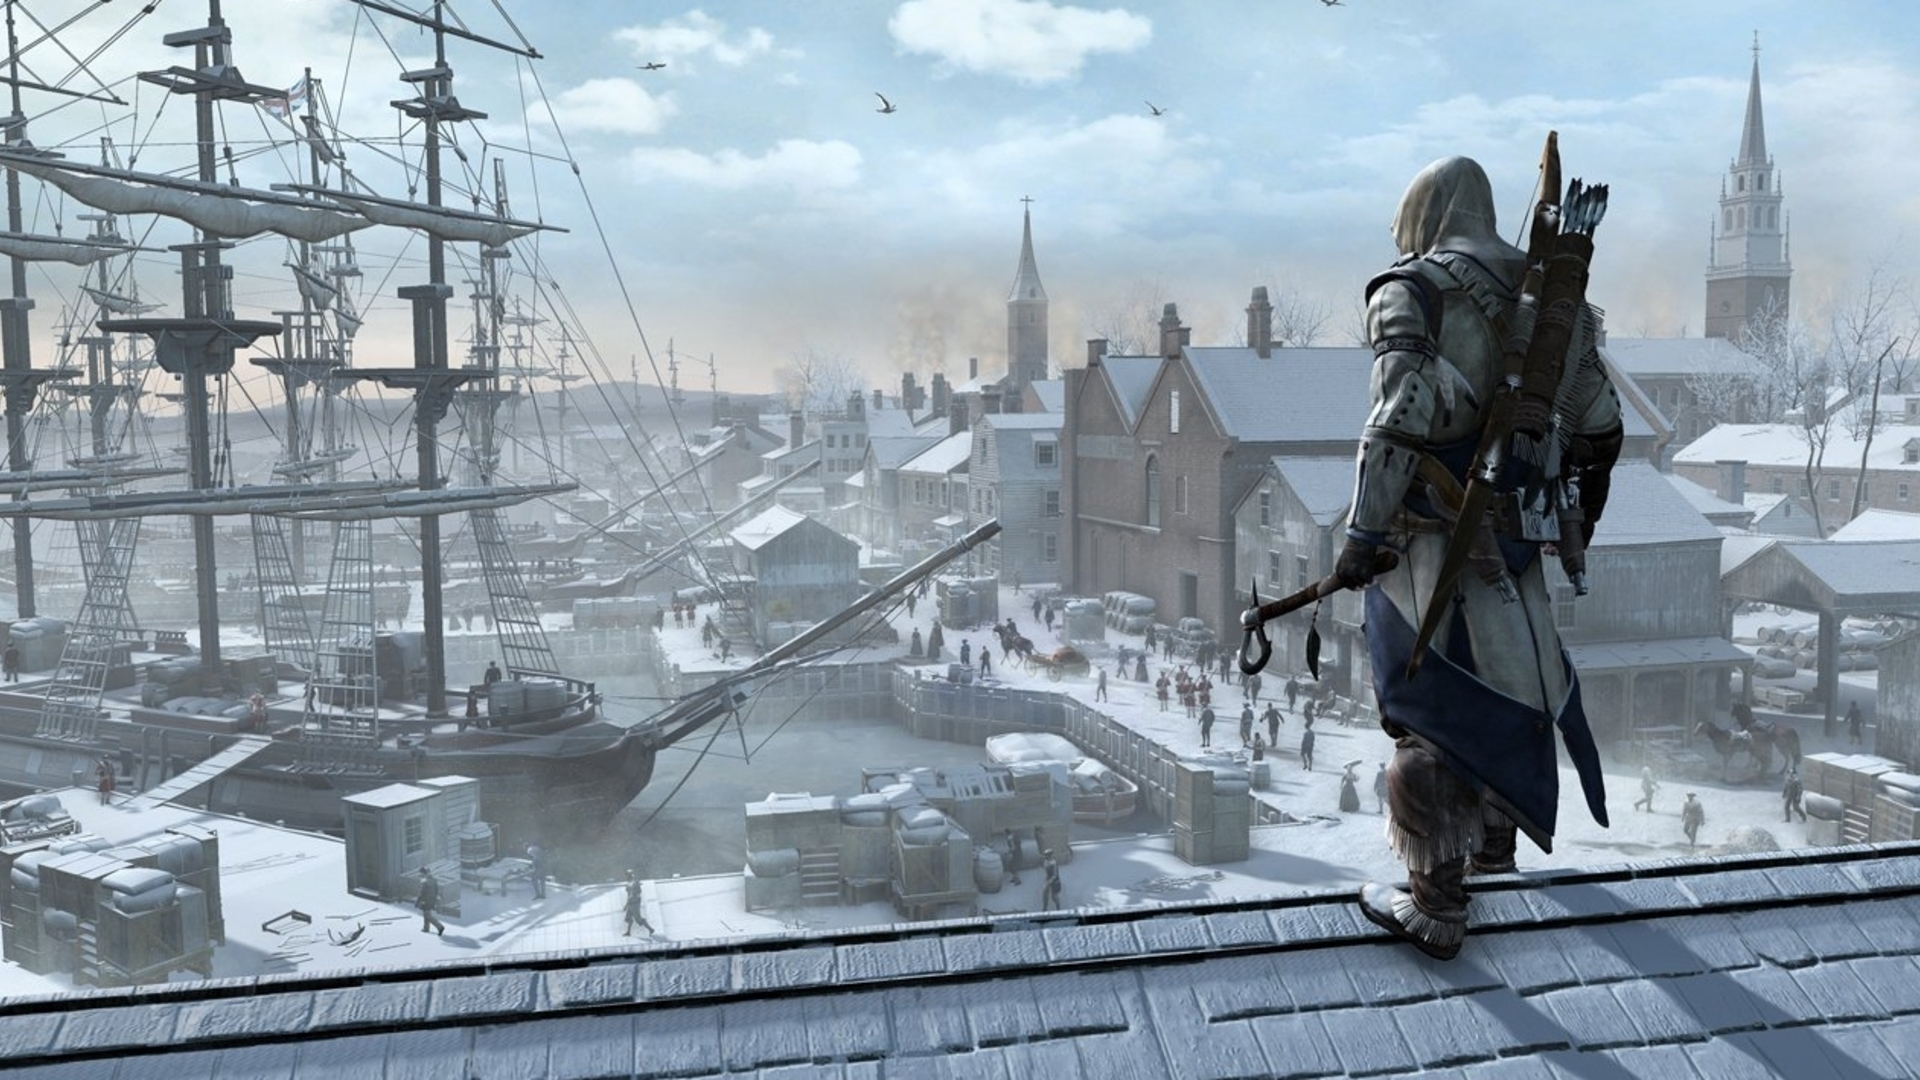 Assassin's Creed 3 Protagonist Connor Kenway